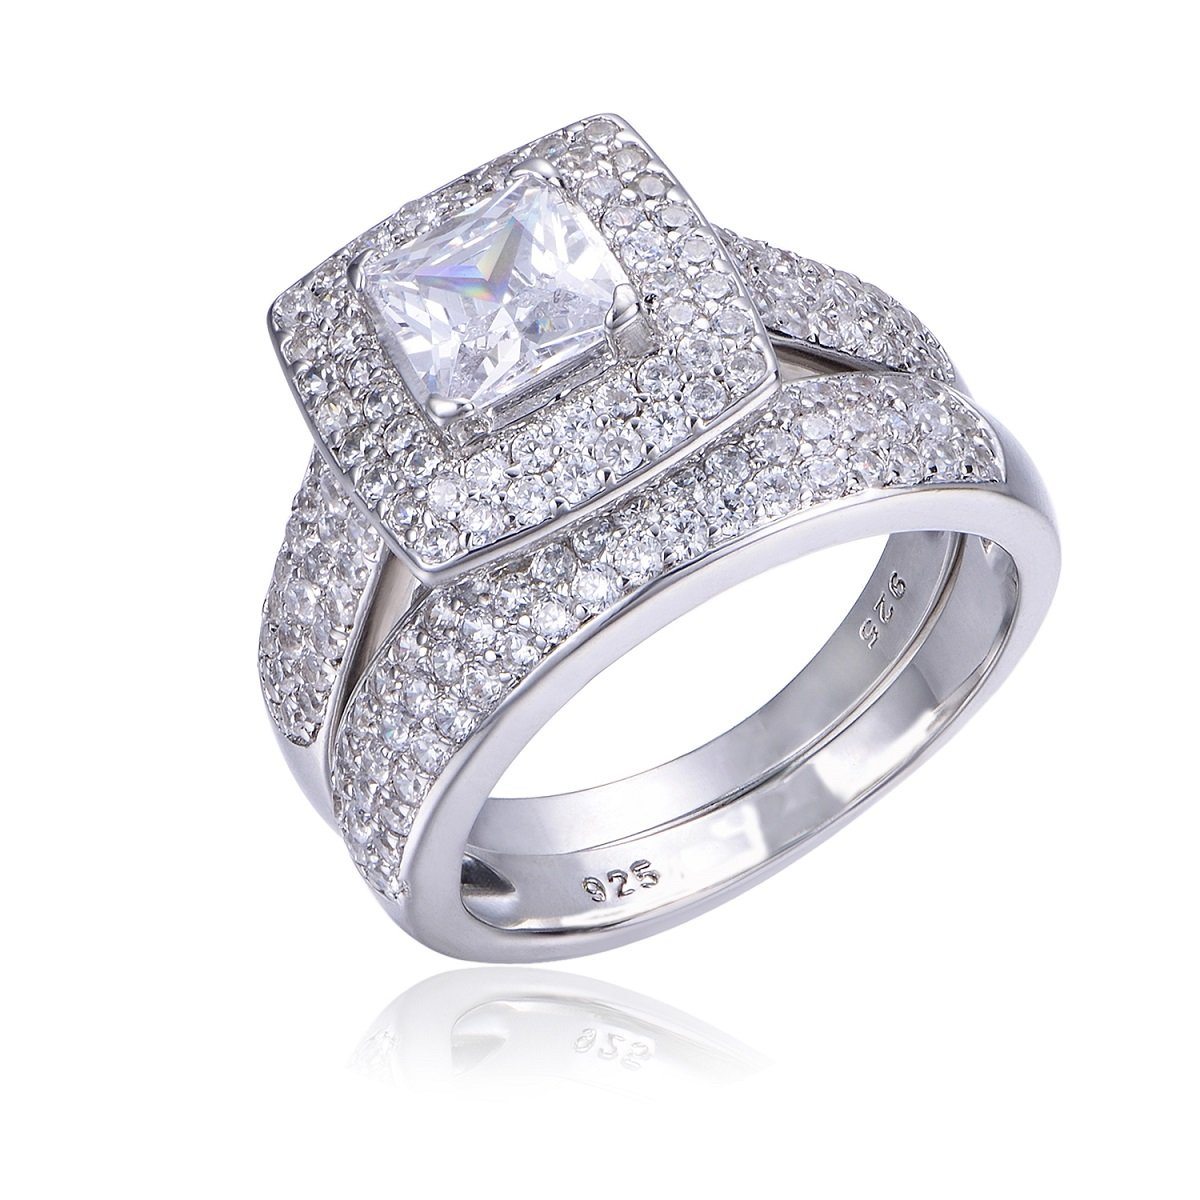 BELITIFY 2.4ct Princess Cut Cubic Zirconia Wedding ring Bands Engagement Bridal Sets 925 Sterling Silver Size 5-11